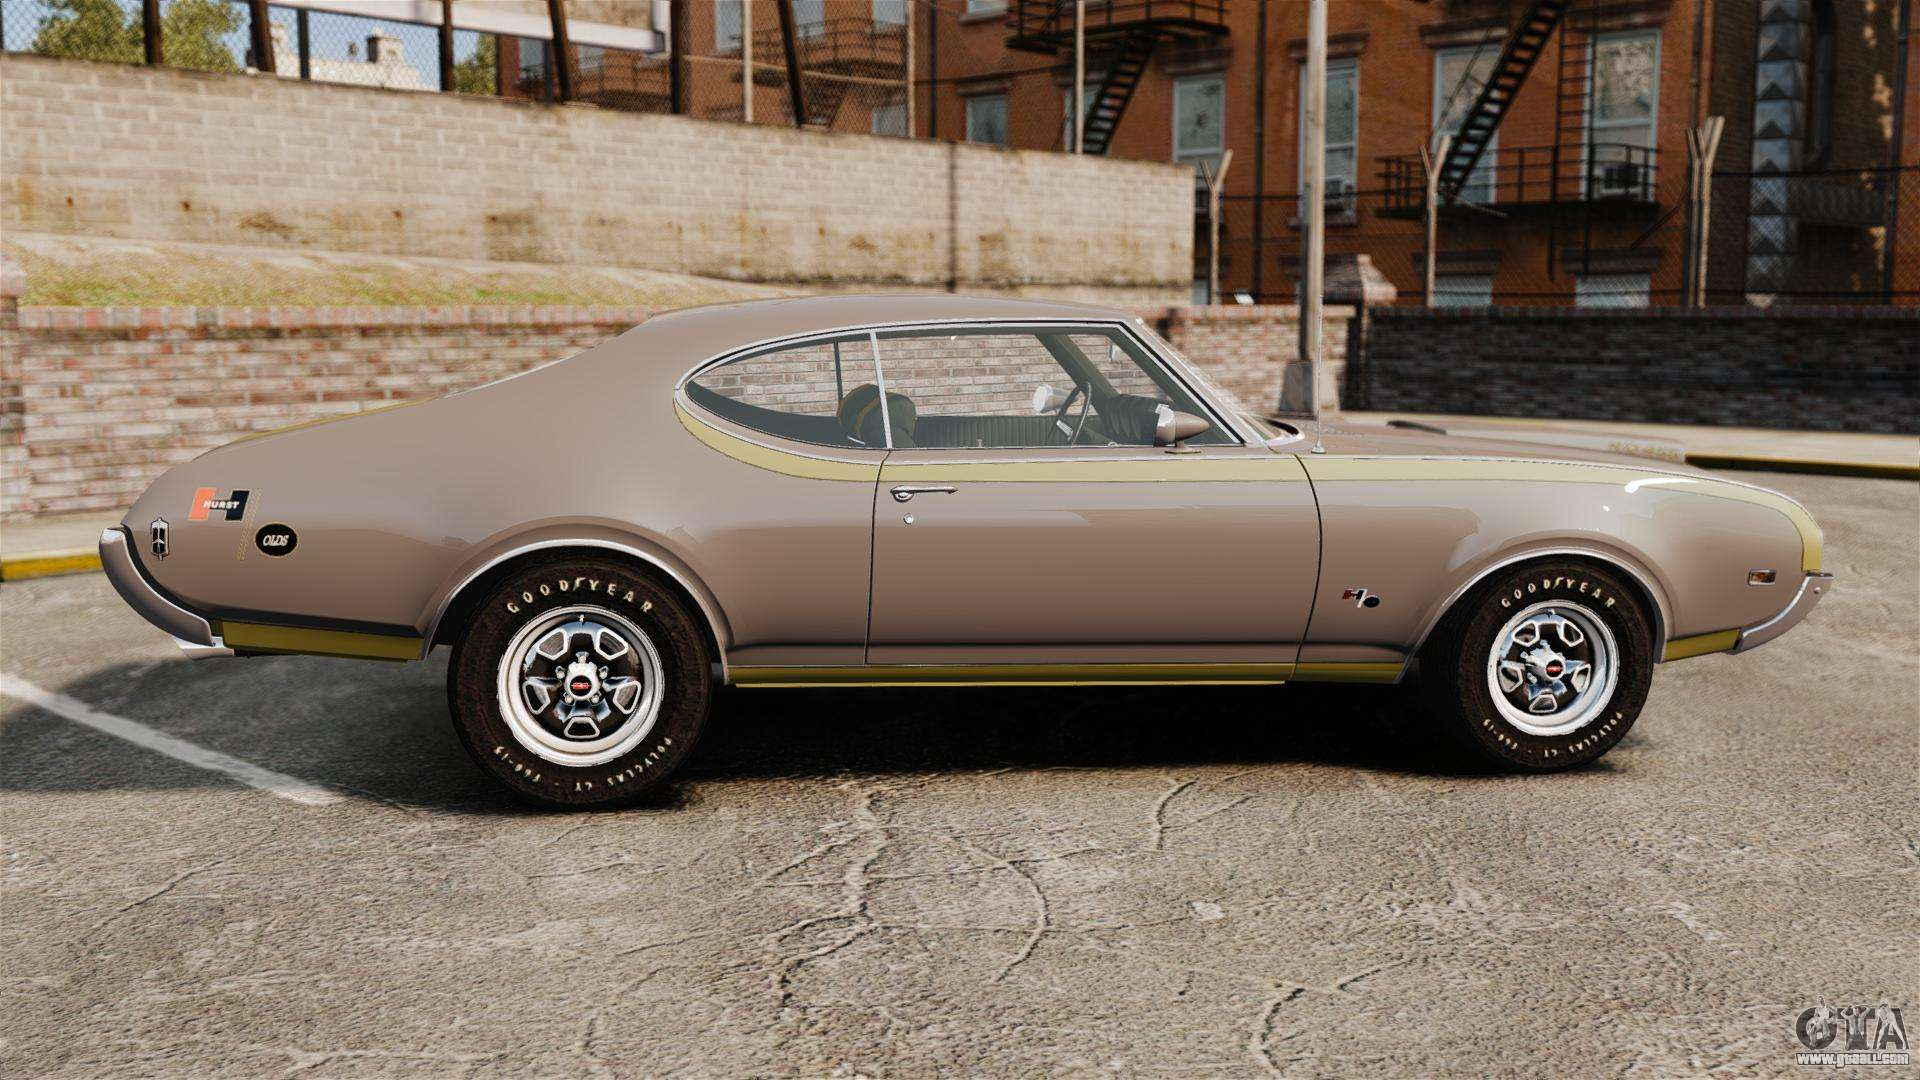 1969 Oldsmobile Cutlass S Technical Specifications and Dimensions